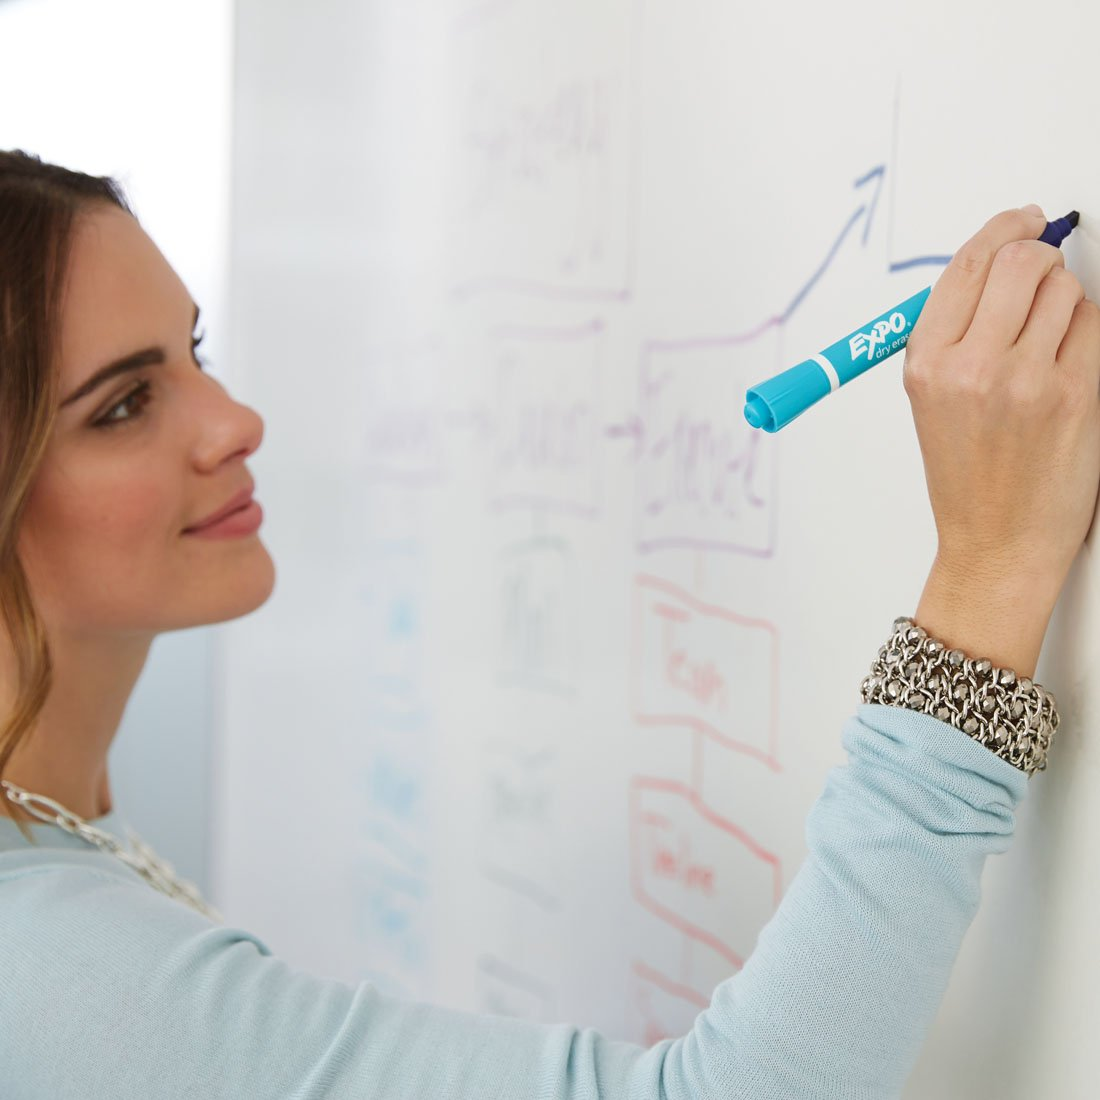 woman-working-at-whiteboard-with-expo-2in1-marker.jpg